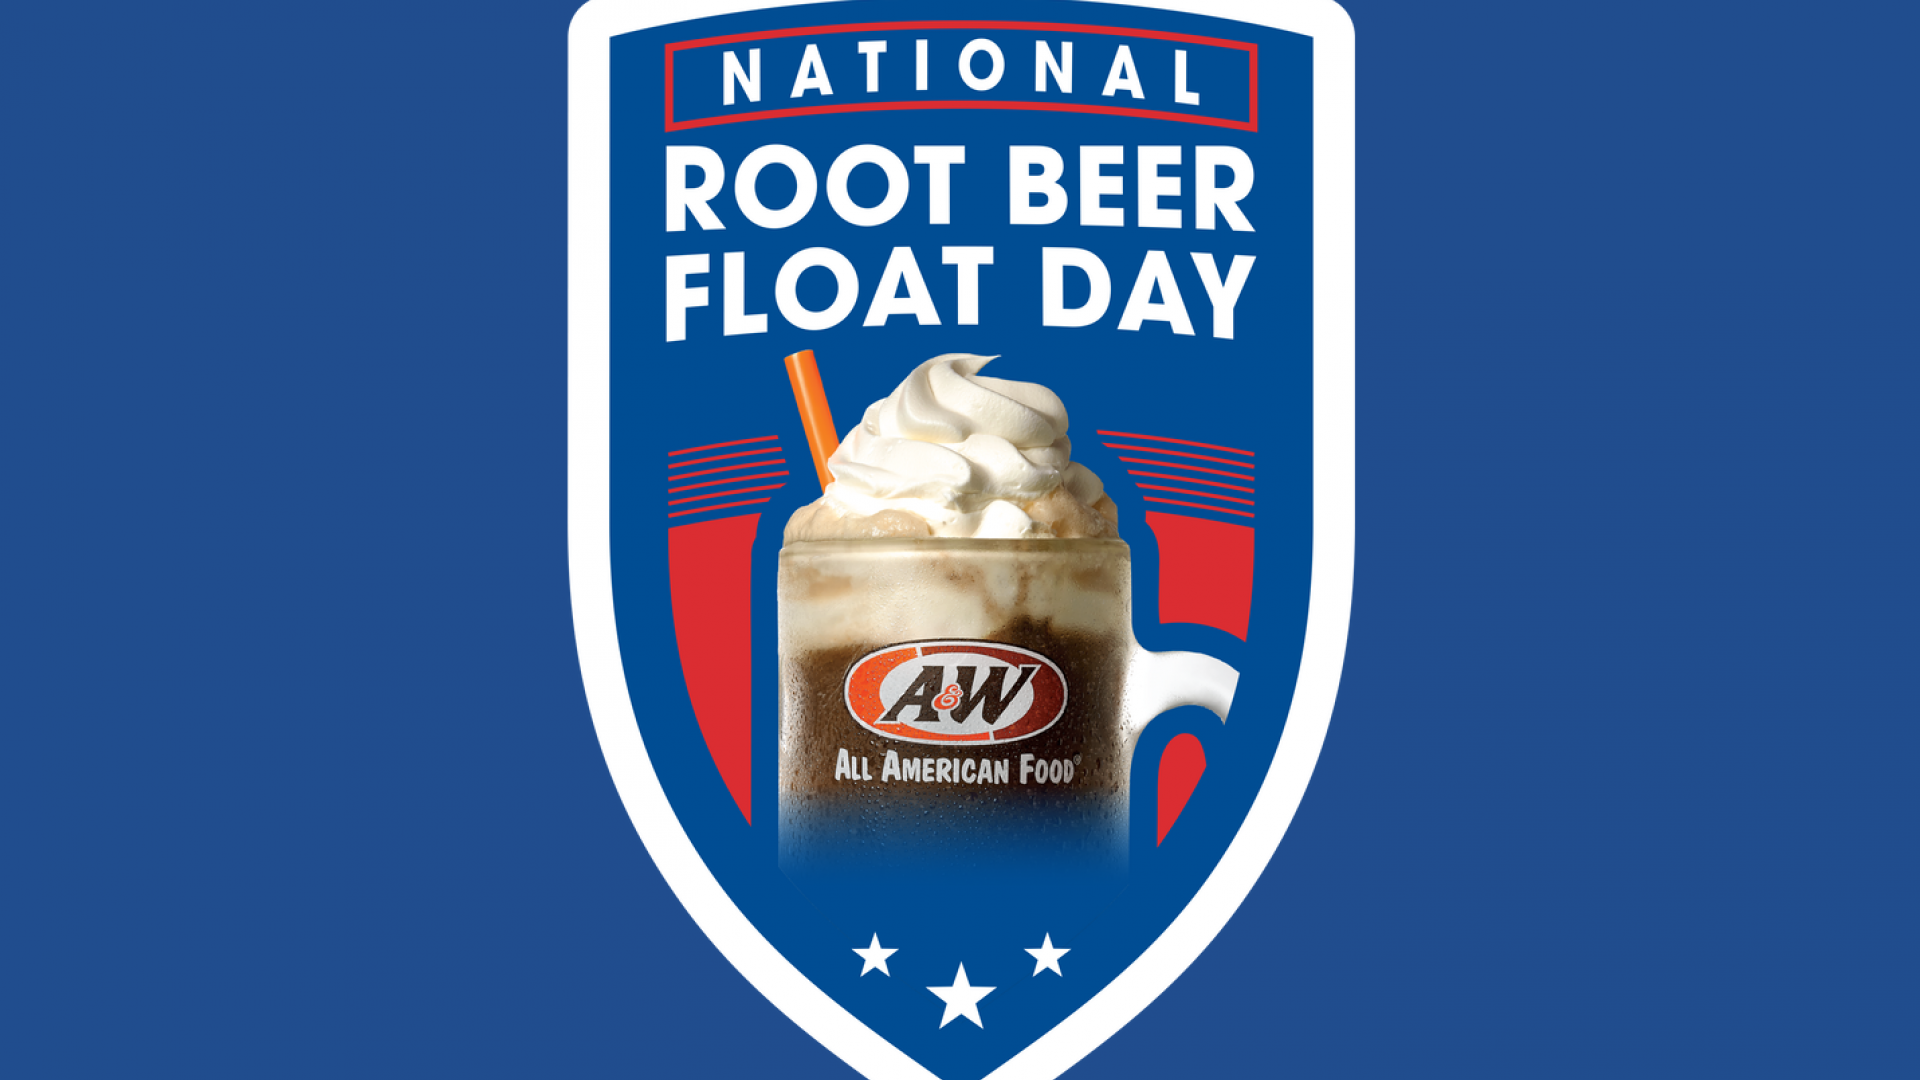 2018 National Root Beer Float Day Logo